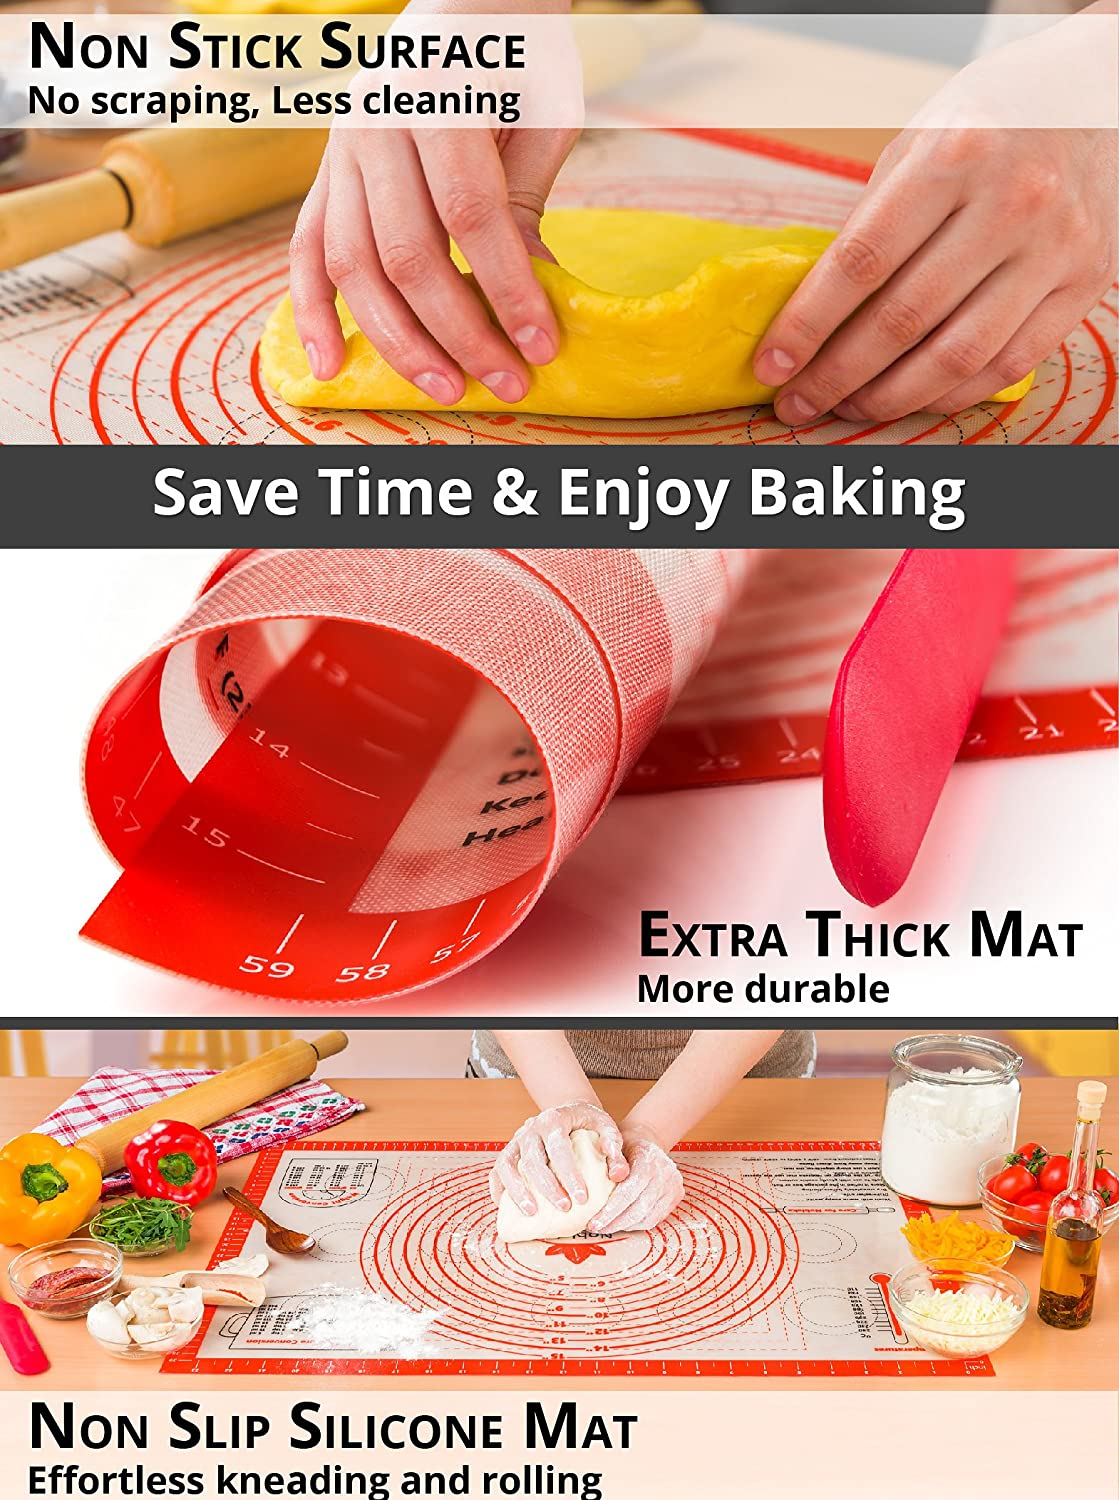 Kitchen,dining & Bar Bakeware Confident 30*40 Non-stick Silicone Baking Mats Pad Baking Sheet Glass Liners Kneading Dough Mat Pizza Cake Sugar Craft Pastry Cooking Tool Always Buy Good